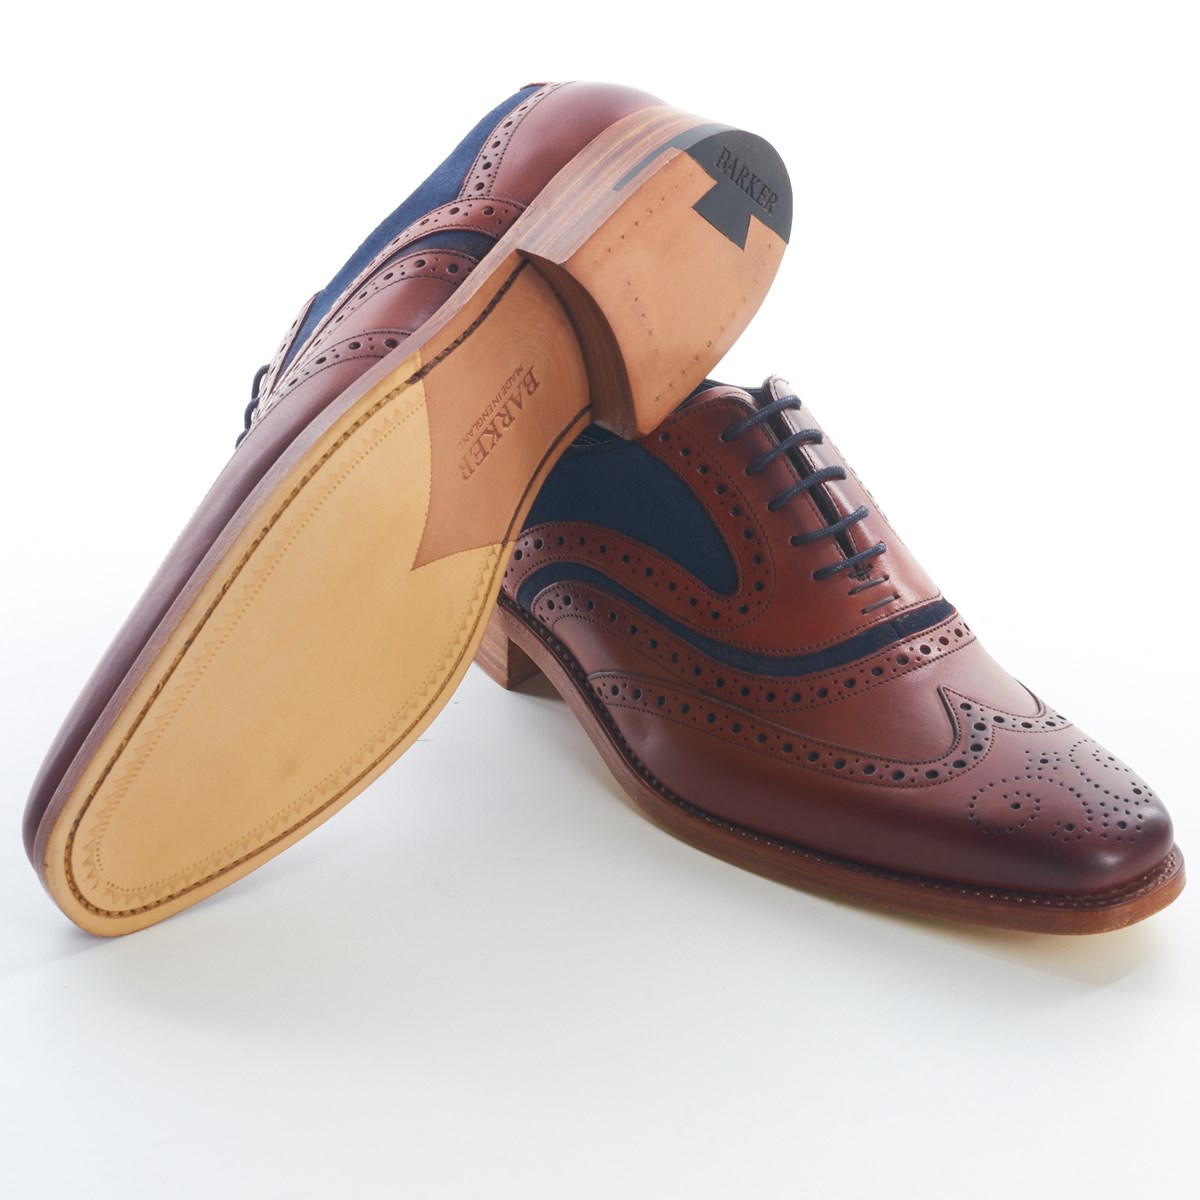 20d5f60715e82 Dress Brogue Wingtip McClean Rosewood and Navy by Barker - The Kilt Store